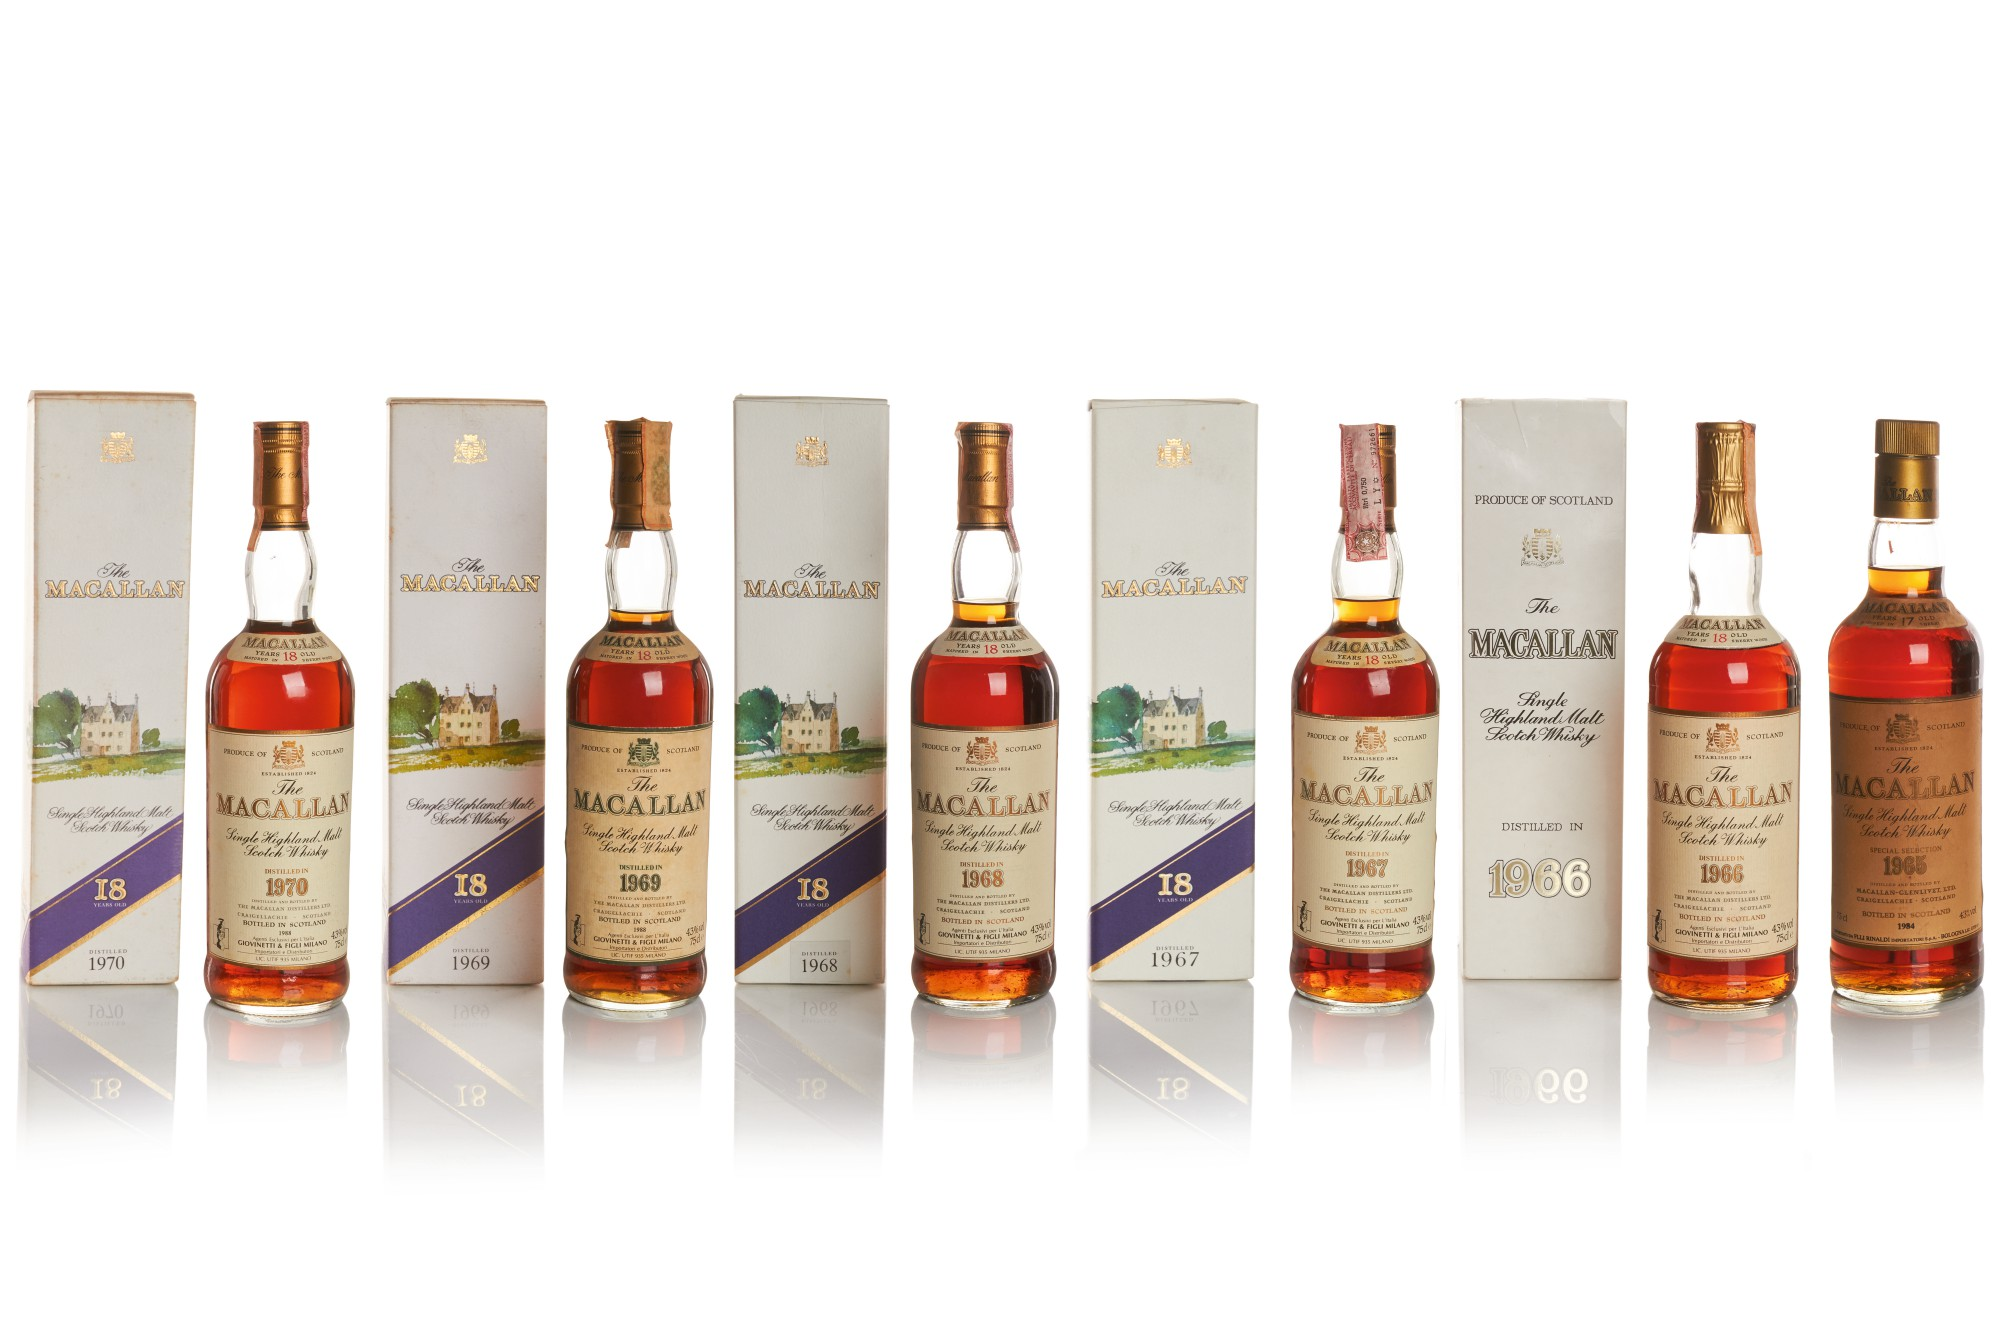 THE MACALLAN 17 YEAR OLD 43.0 ABV 1965